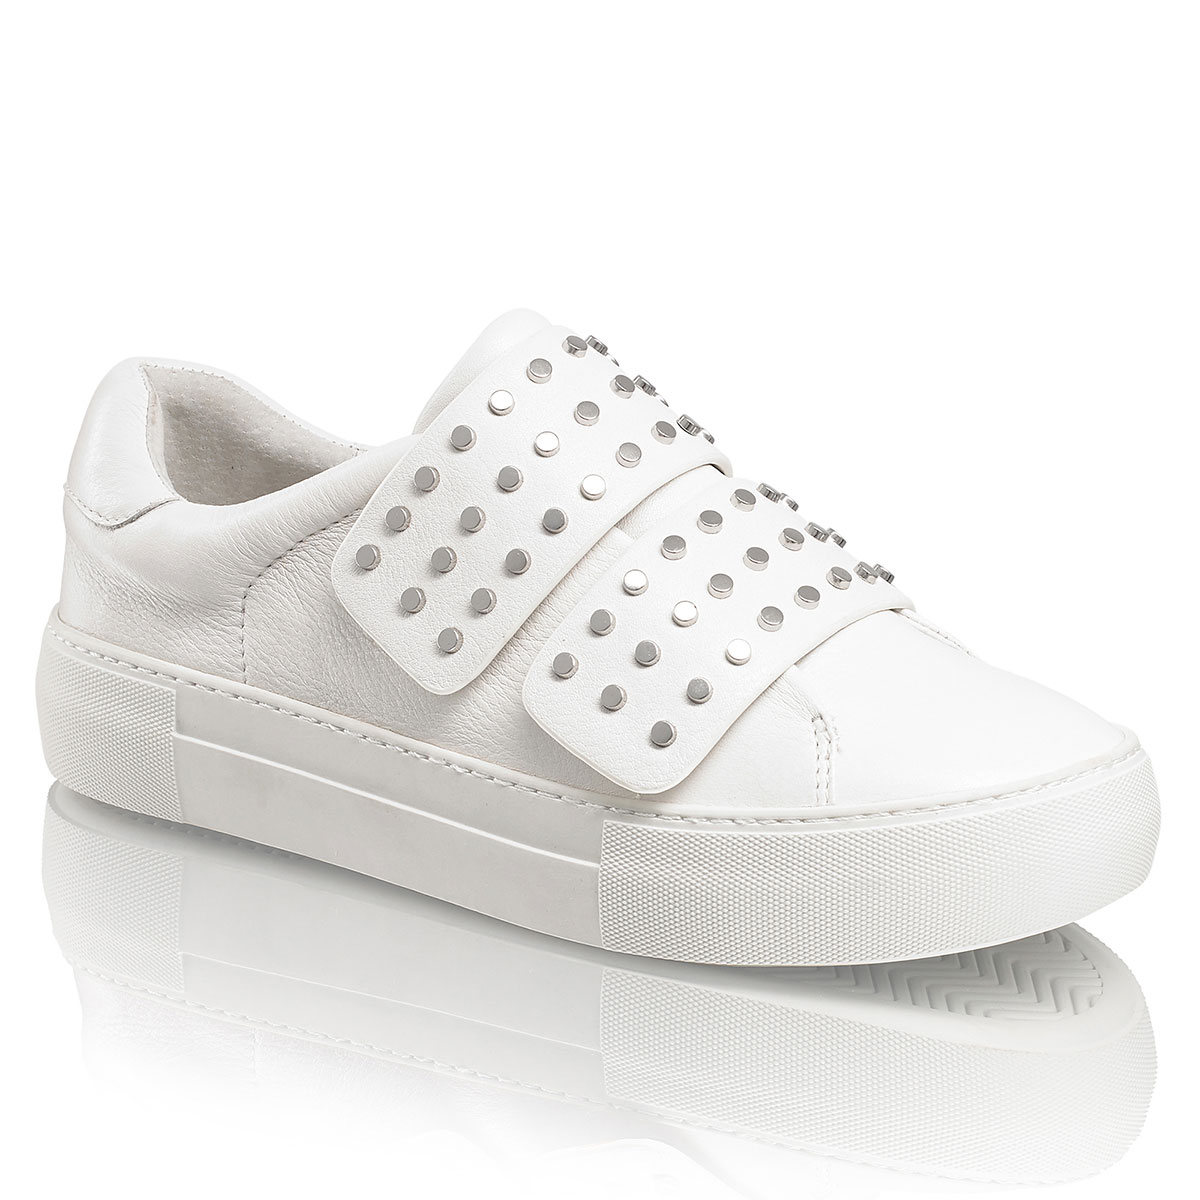 Russell and Bromley ACCENT J Platform Sneaker